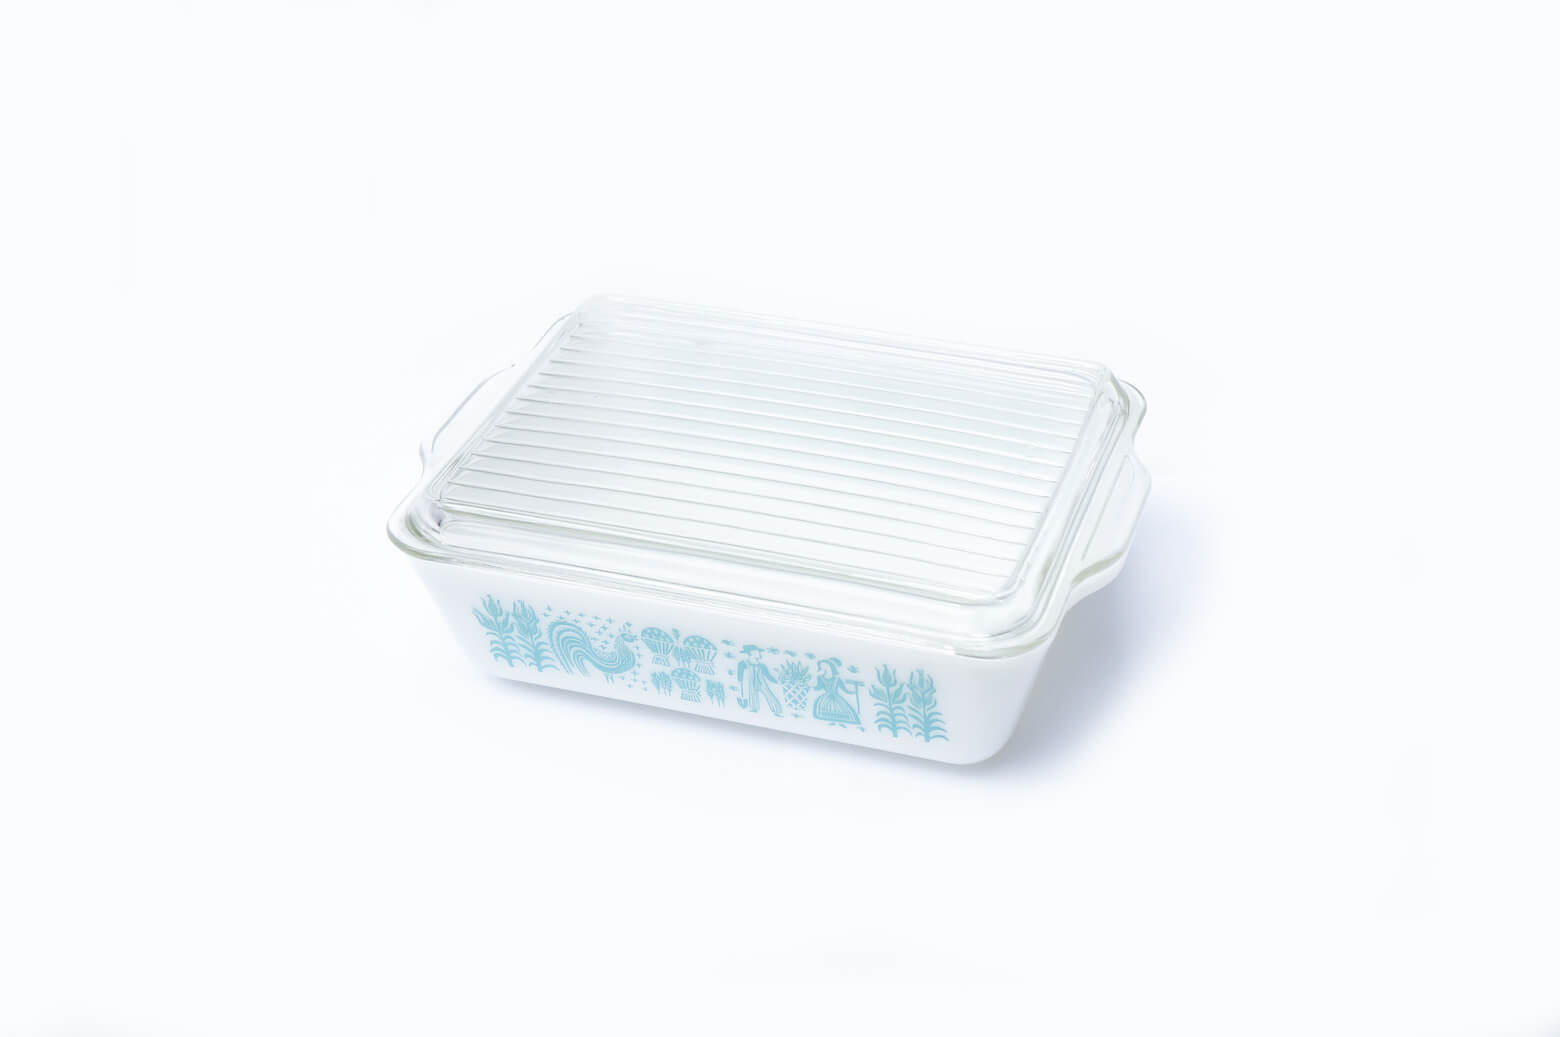 OLD PYREX BUTTER PRINT Refrigerator L size MADE IN USA / オールドパイレックス バター プリント レフリジレーター Lサイズ アメリカ製